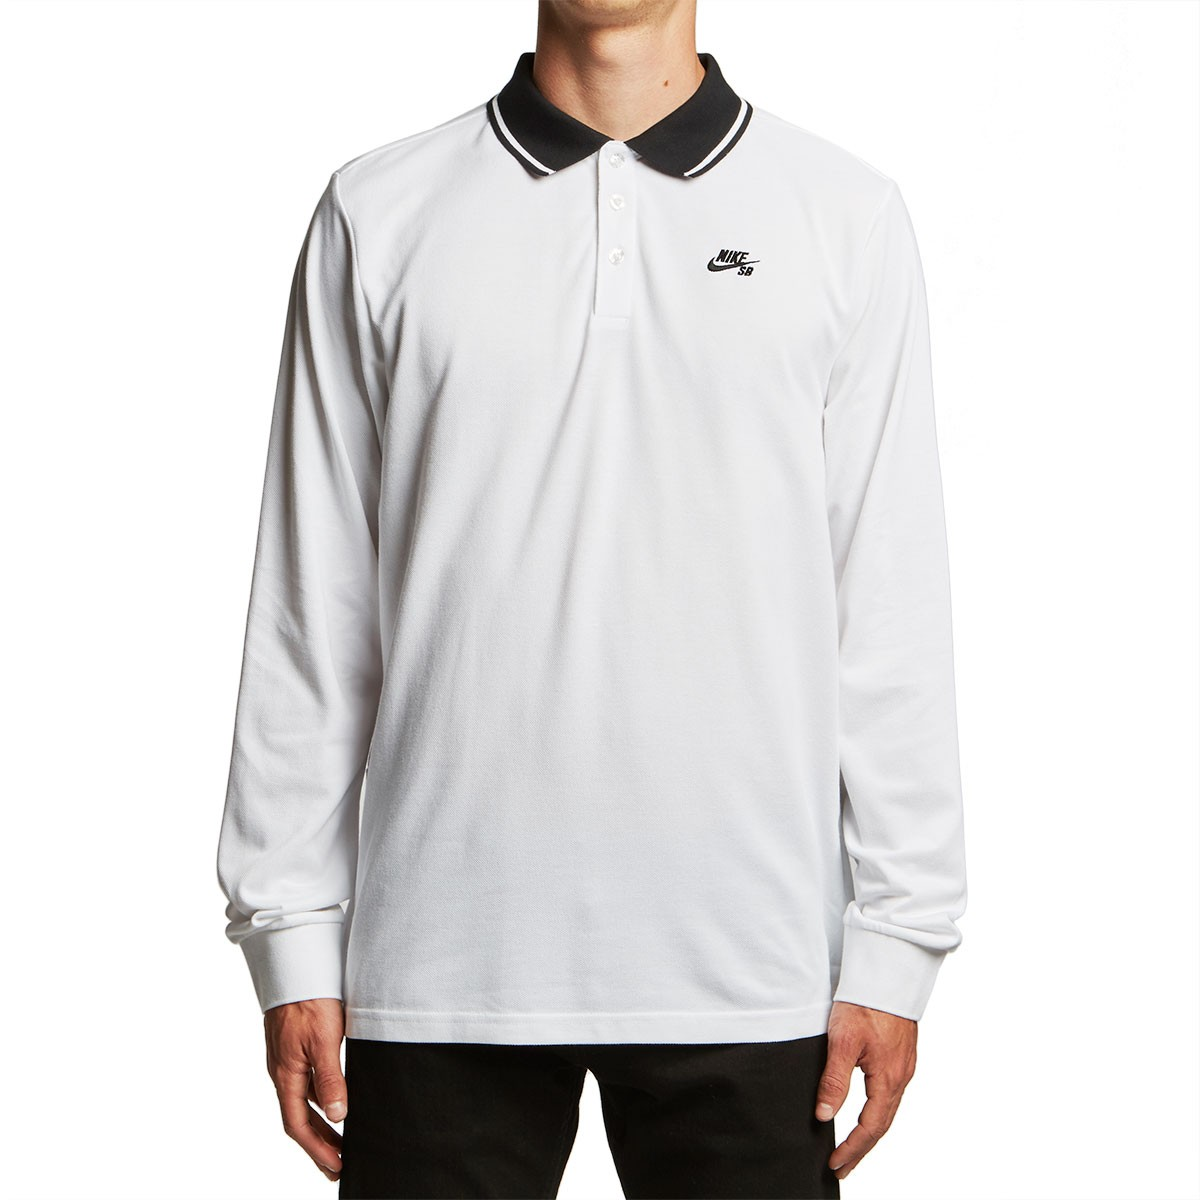 a23b9b41 Nike SB Dri-Fit Longsleeve Polo Shirt - White/Black/Black